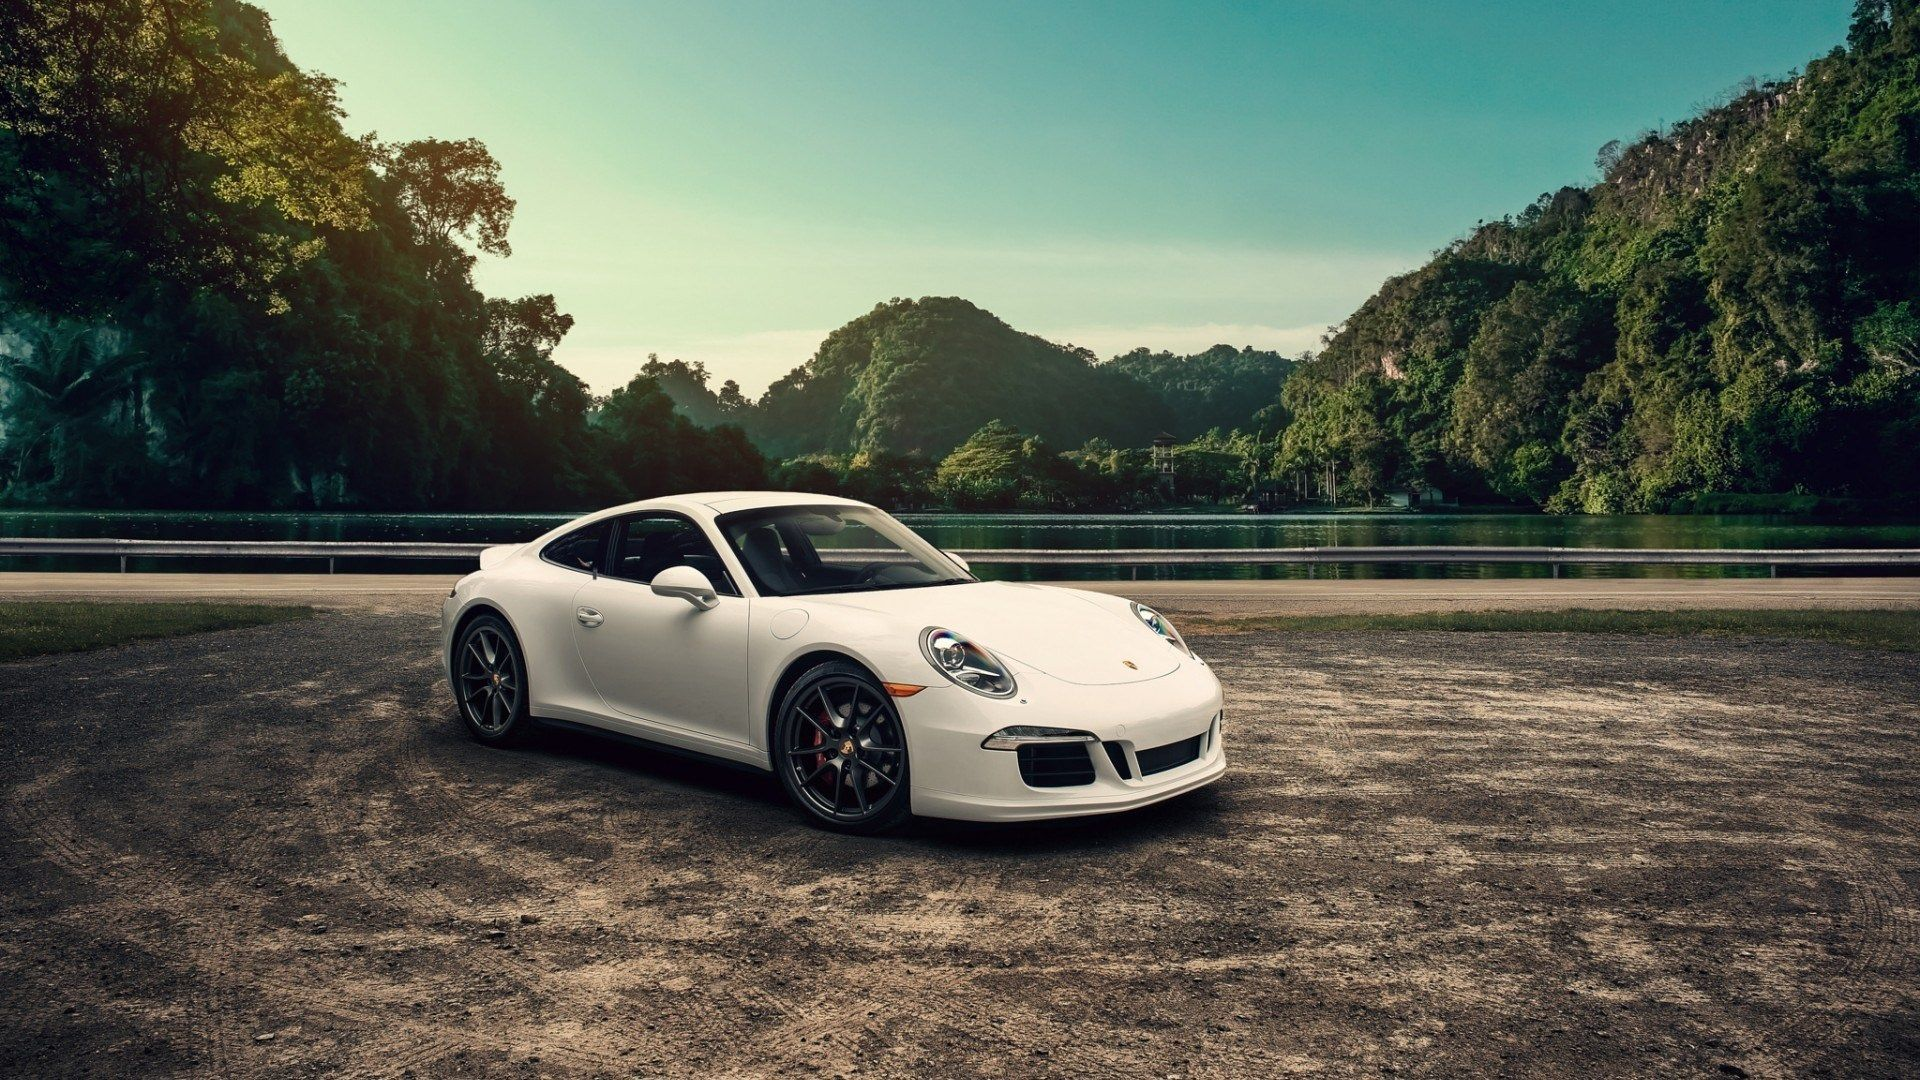 1920x1080 Porsche Free Wallpaper Downloads For Pc Porsche 911 Carrera 4s Hd Wallpapers Of Cars Porsche